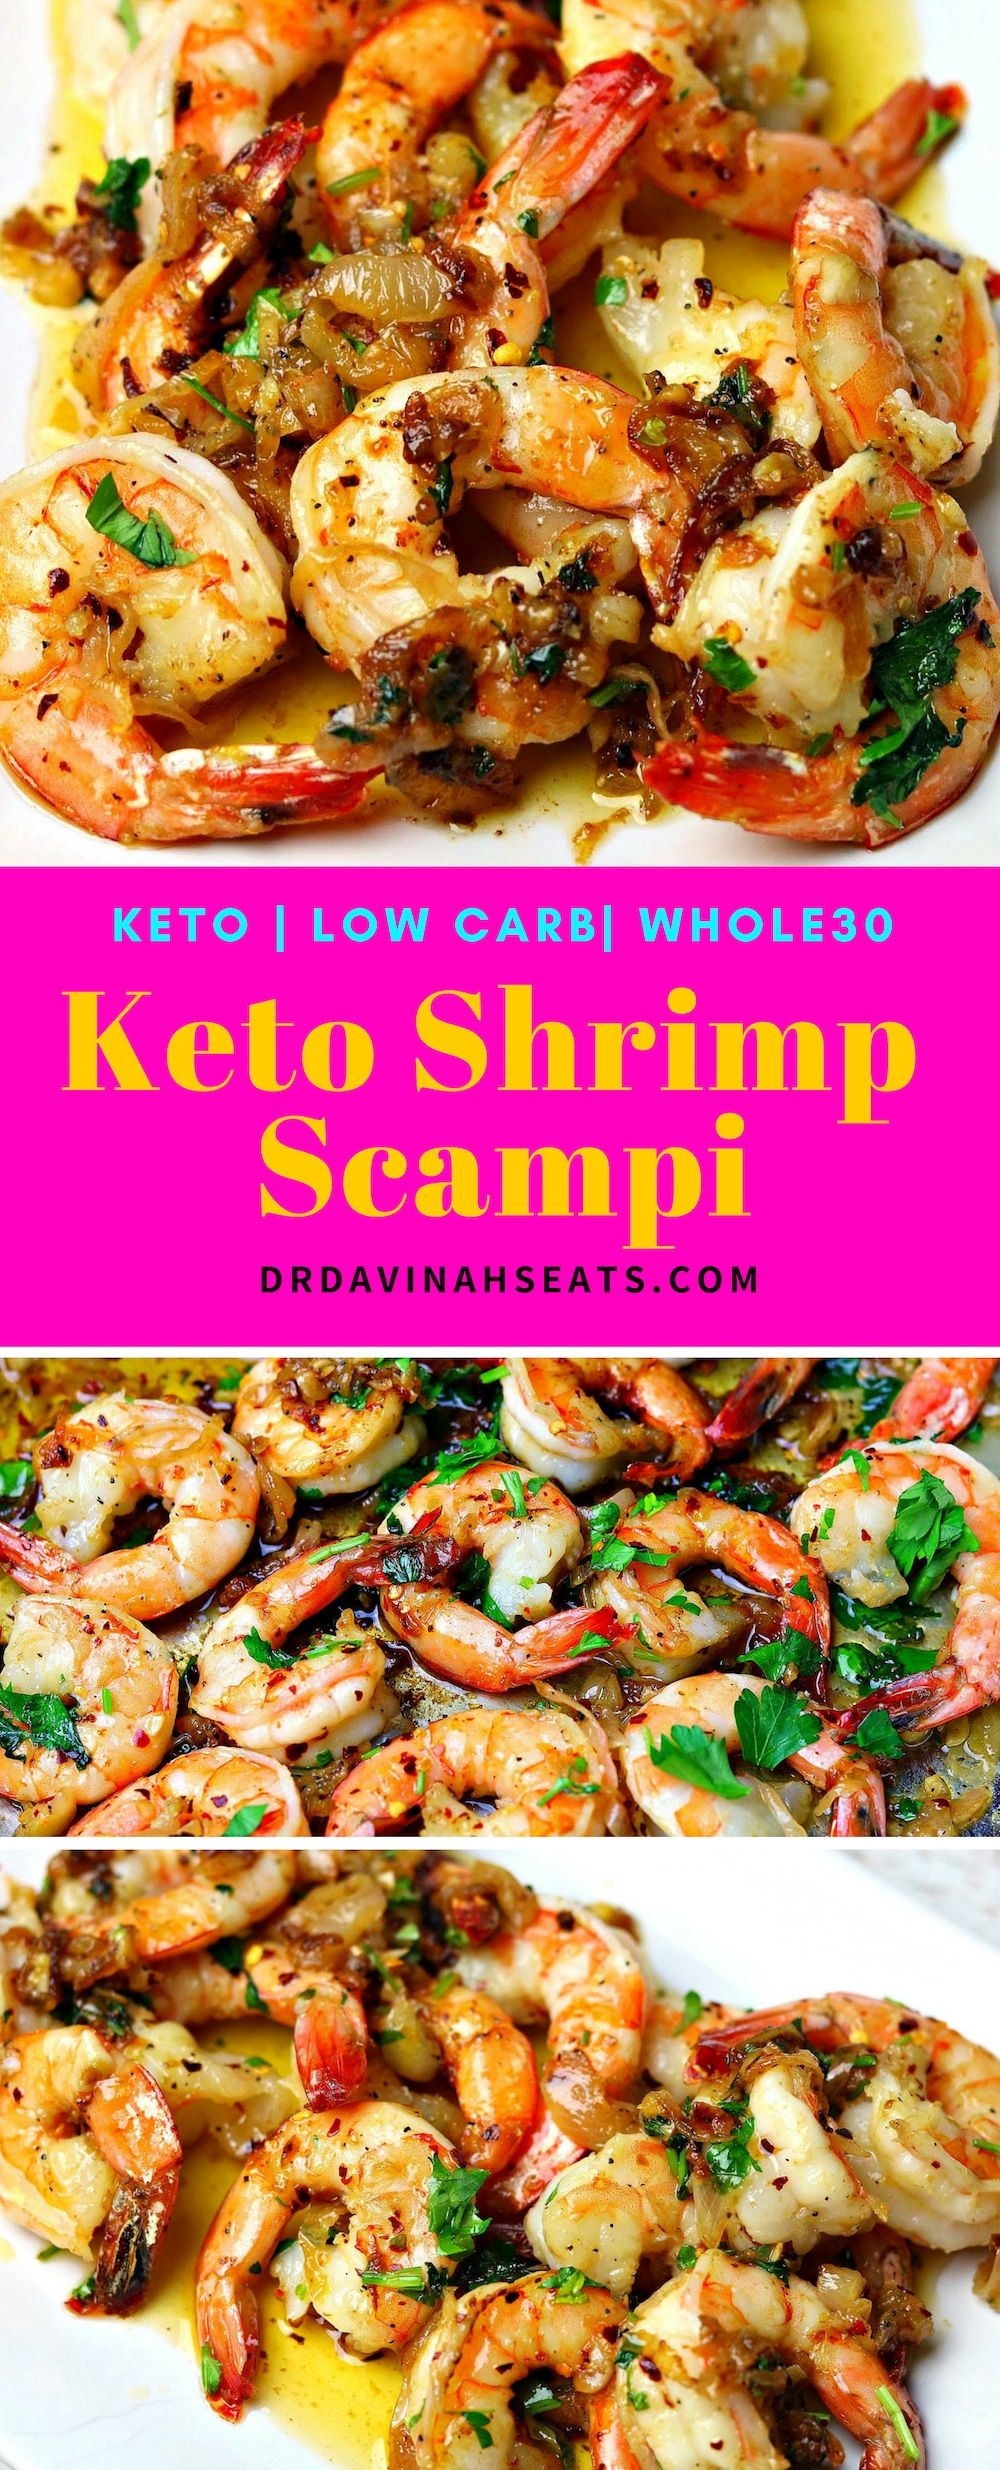 Easy Keto Garlic Shrimp Scampi Recipe #shrimpscampi